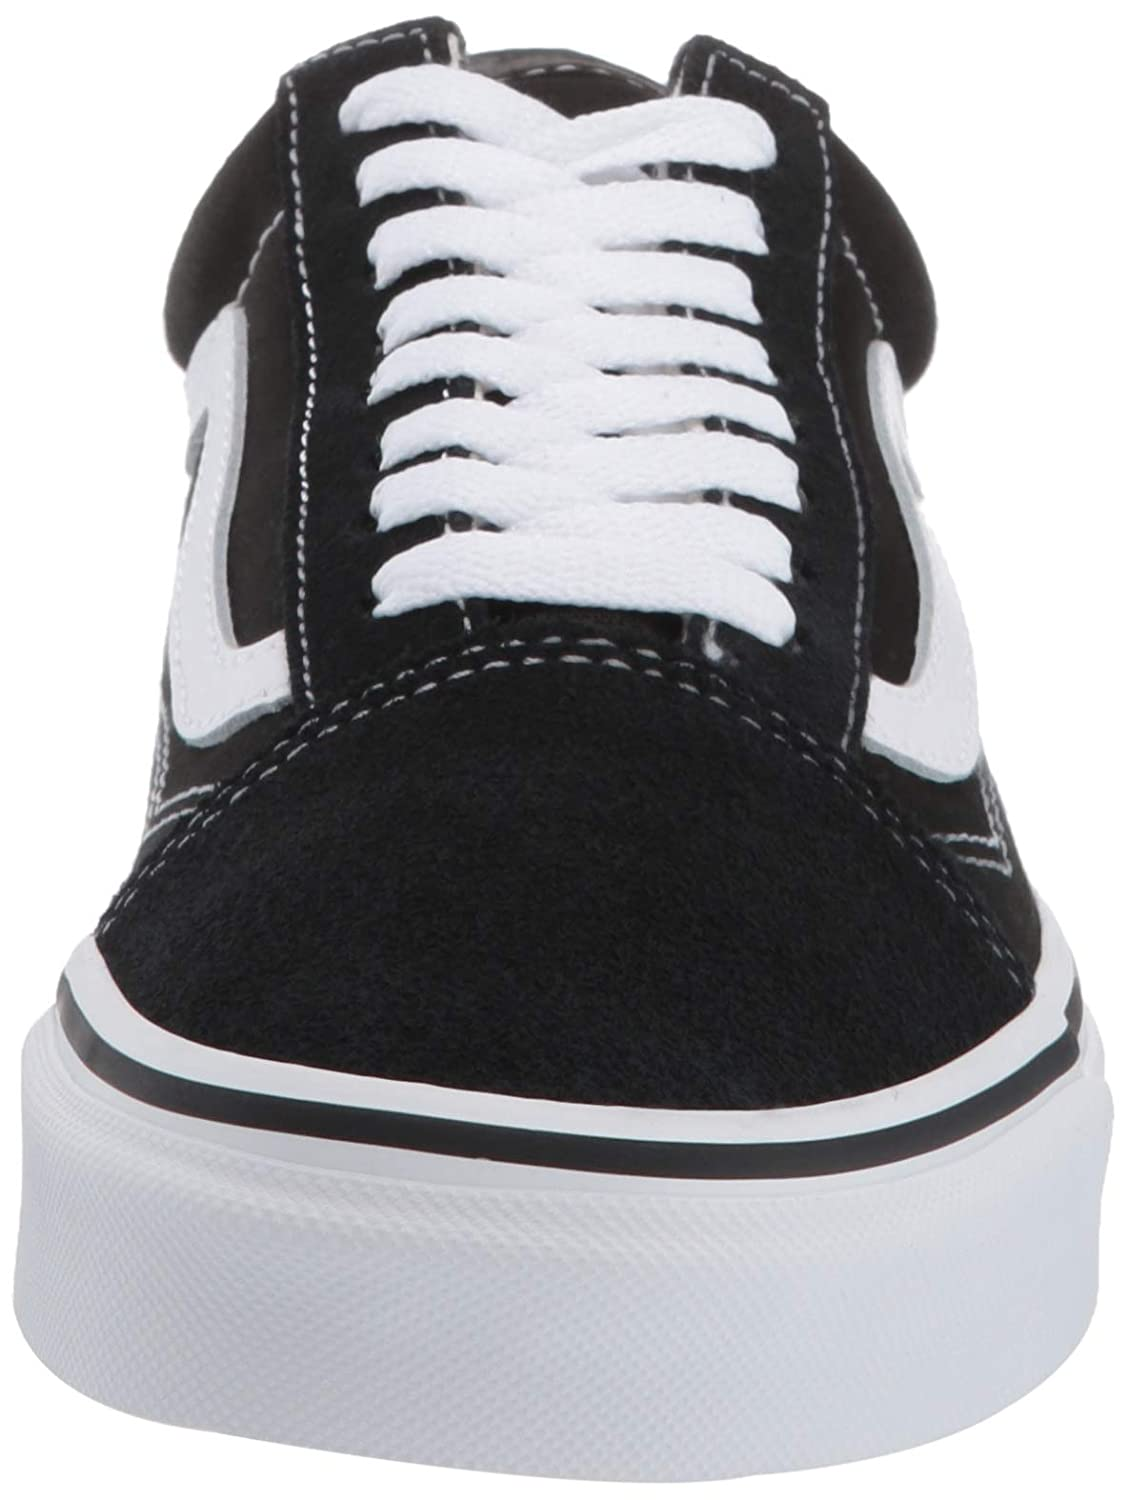 b7f925110 Amazon.com | Vans Unisex Old Skool Classic Skate Shoes | Fashion Sneakers